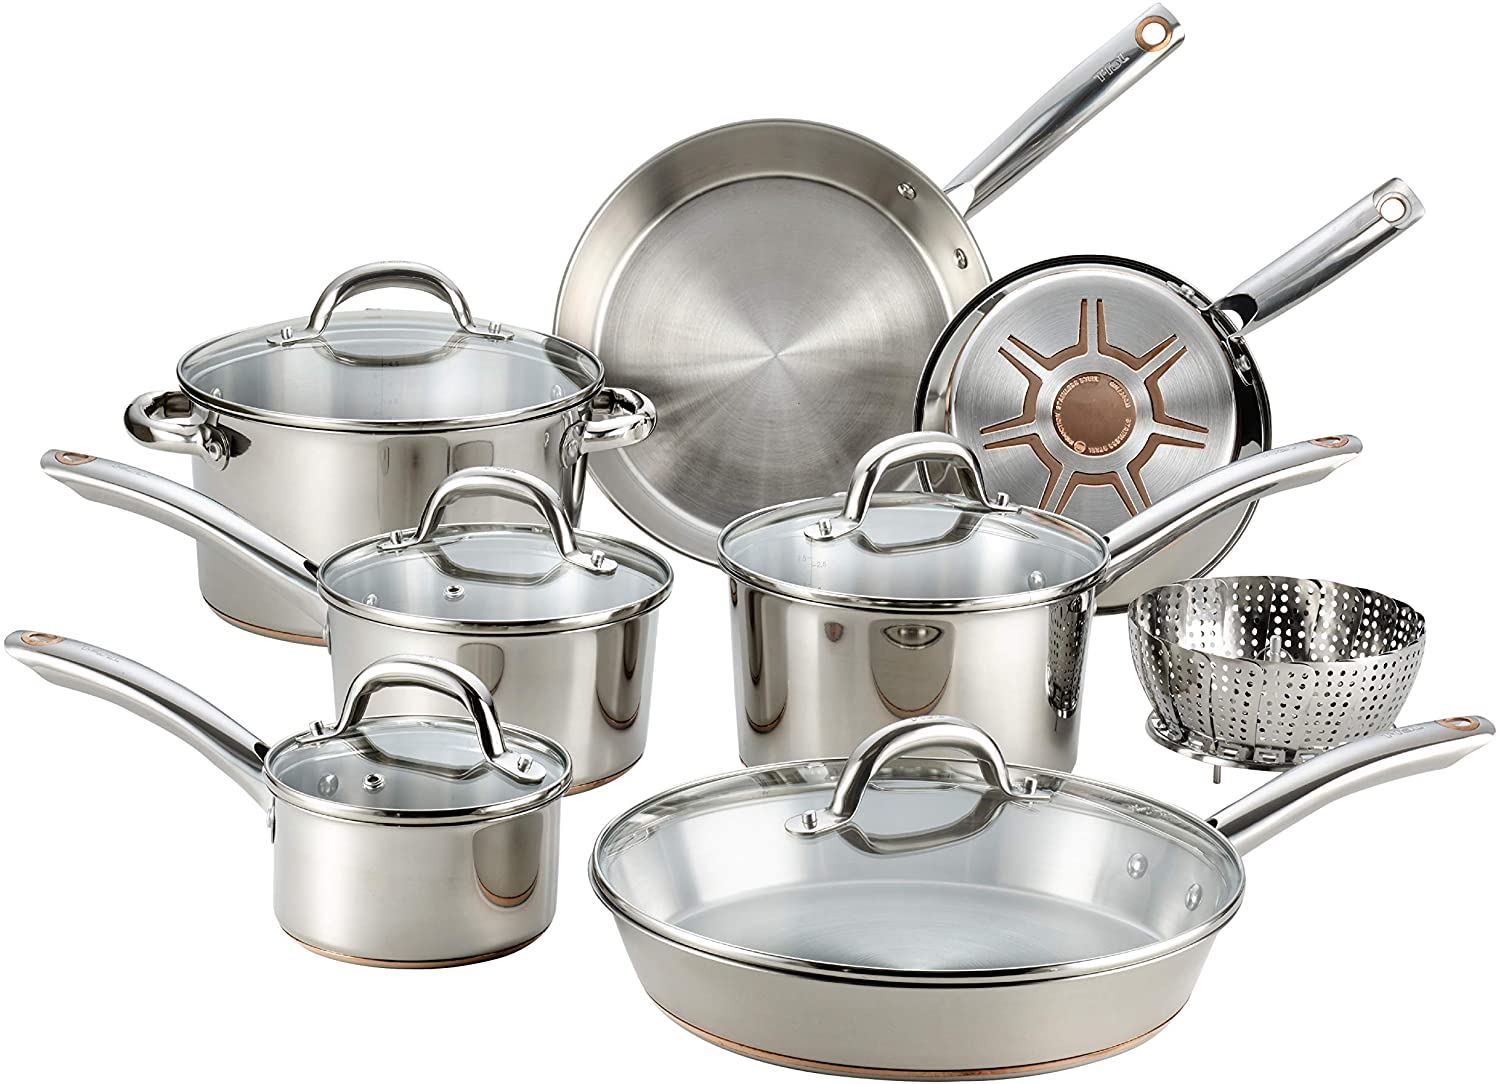 Why Copper Bottom Cookware is Better